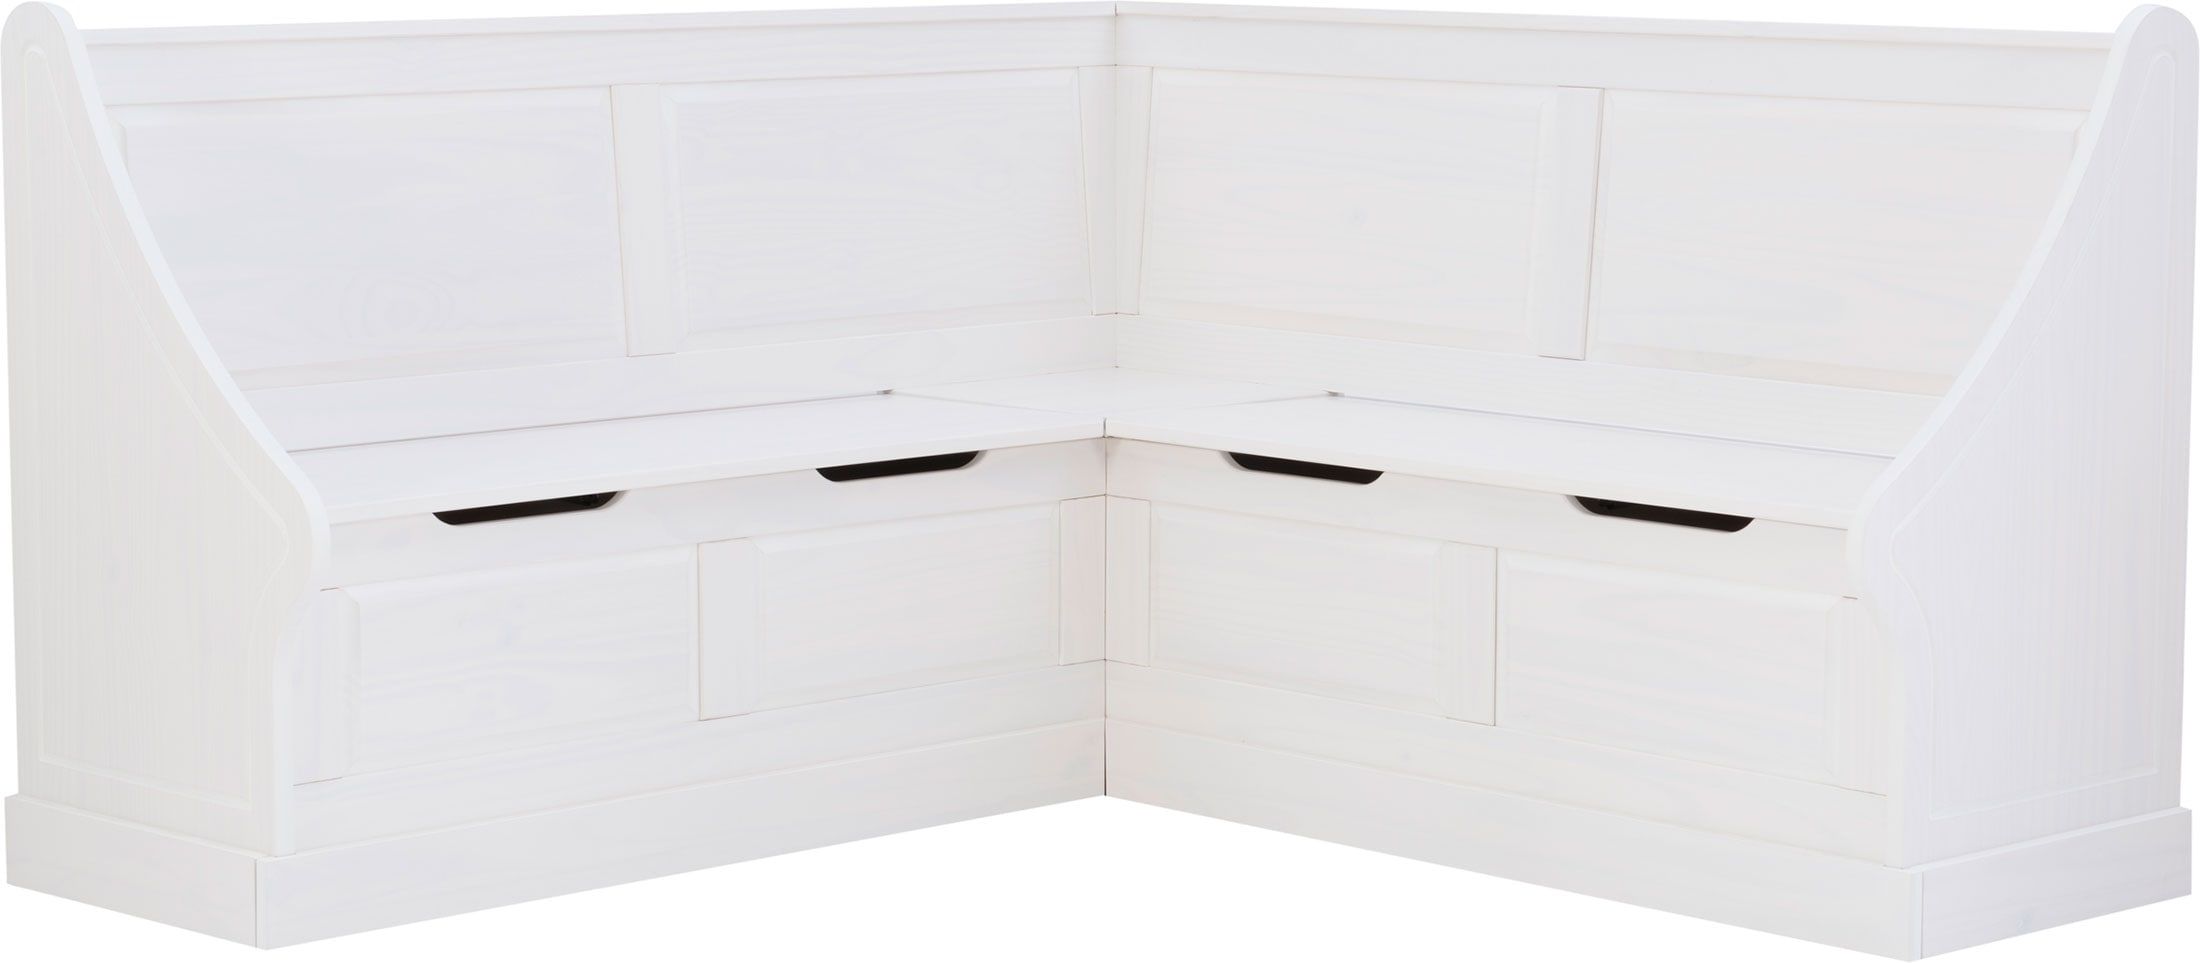 Hall_Entrance Furniture - Smith Corner Storage Bench